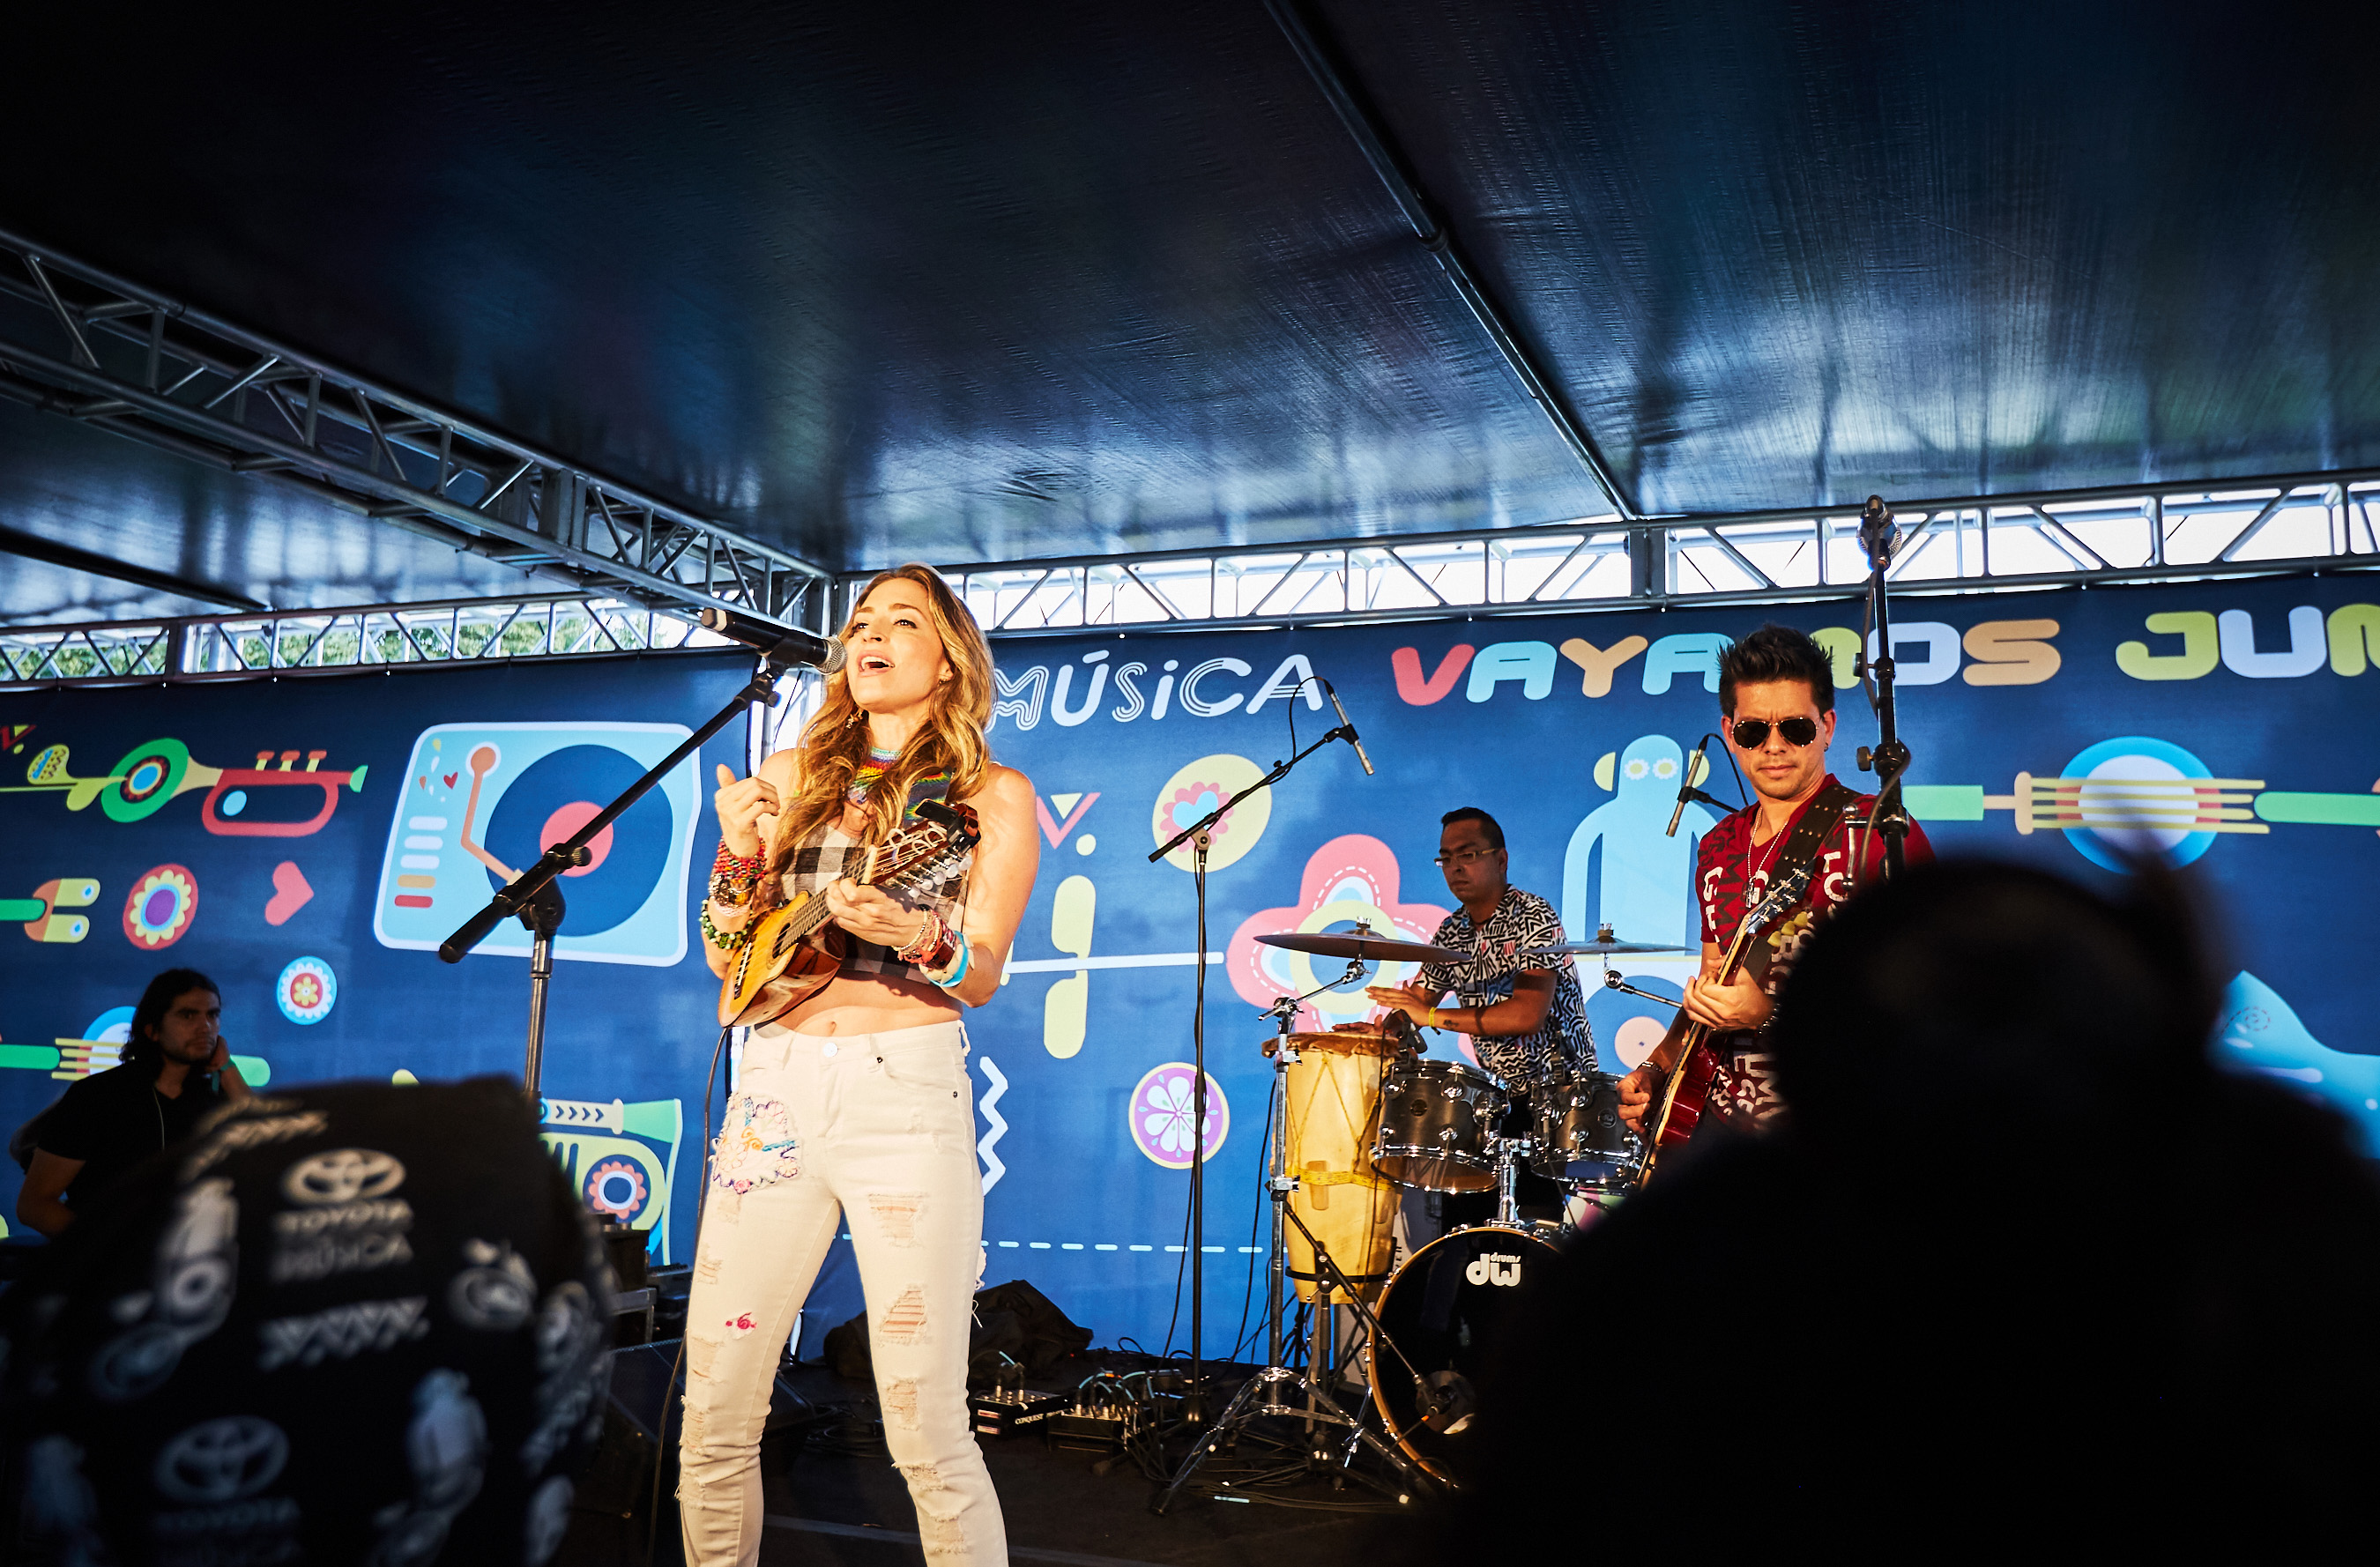 Ecuadorian singer Mirella Cesa closed day 3 at the Toyota Music Den for an epic Ruido Fest 2017 weekend.